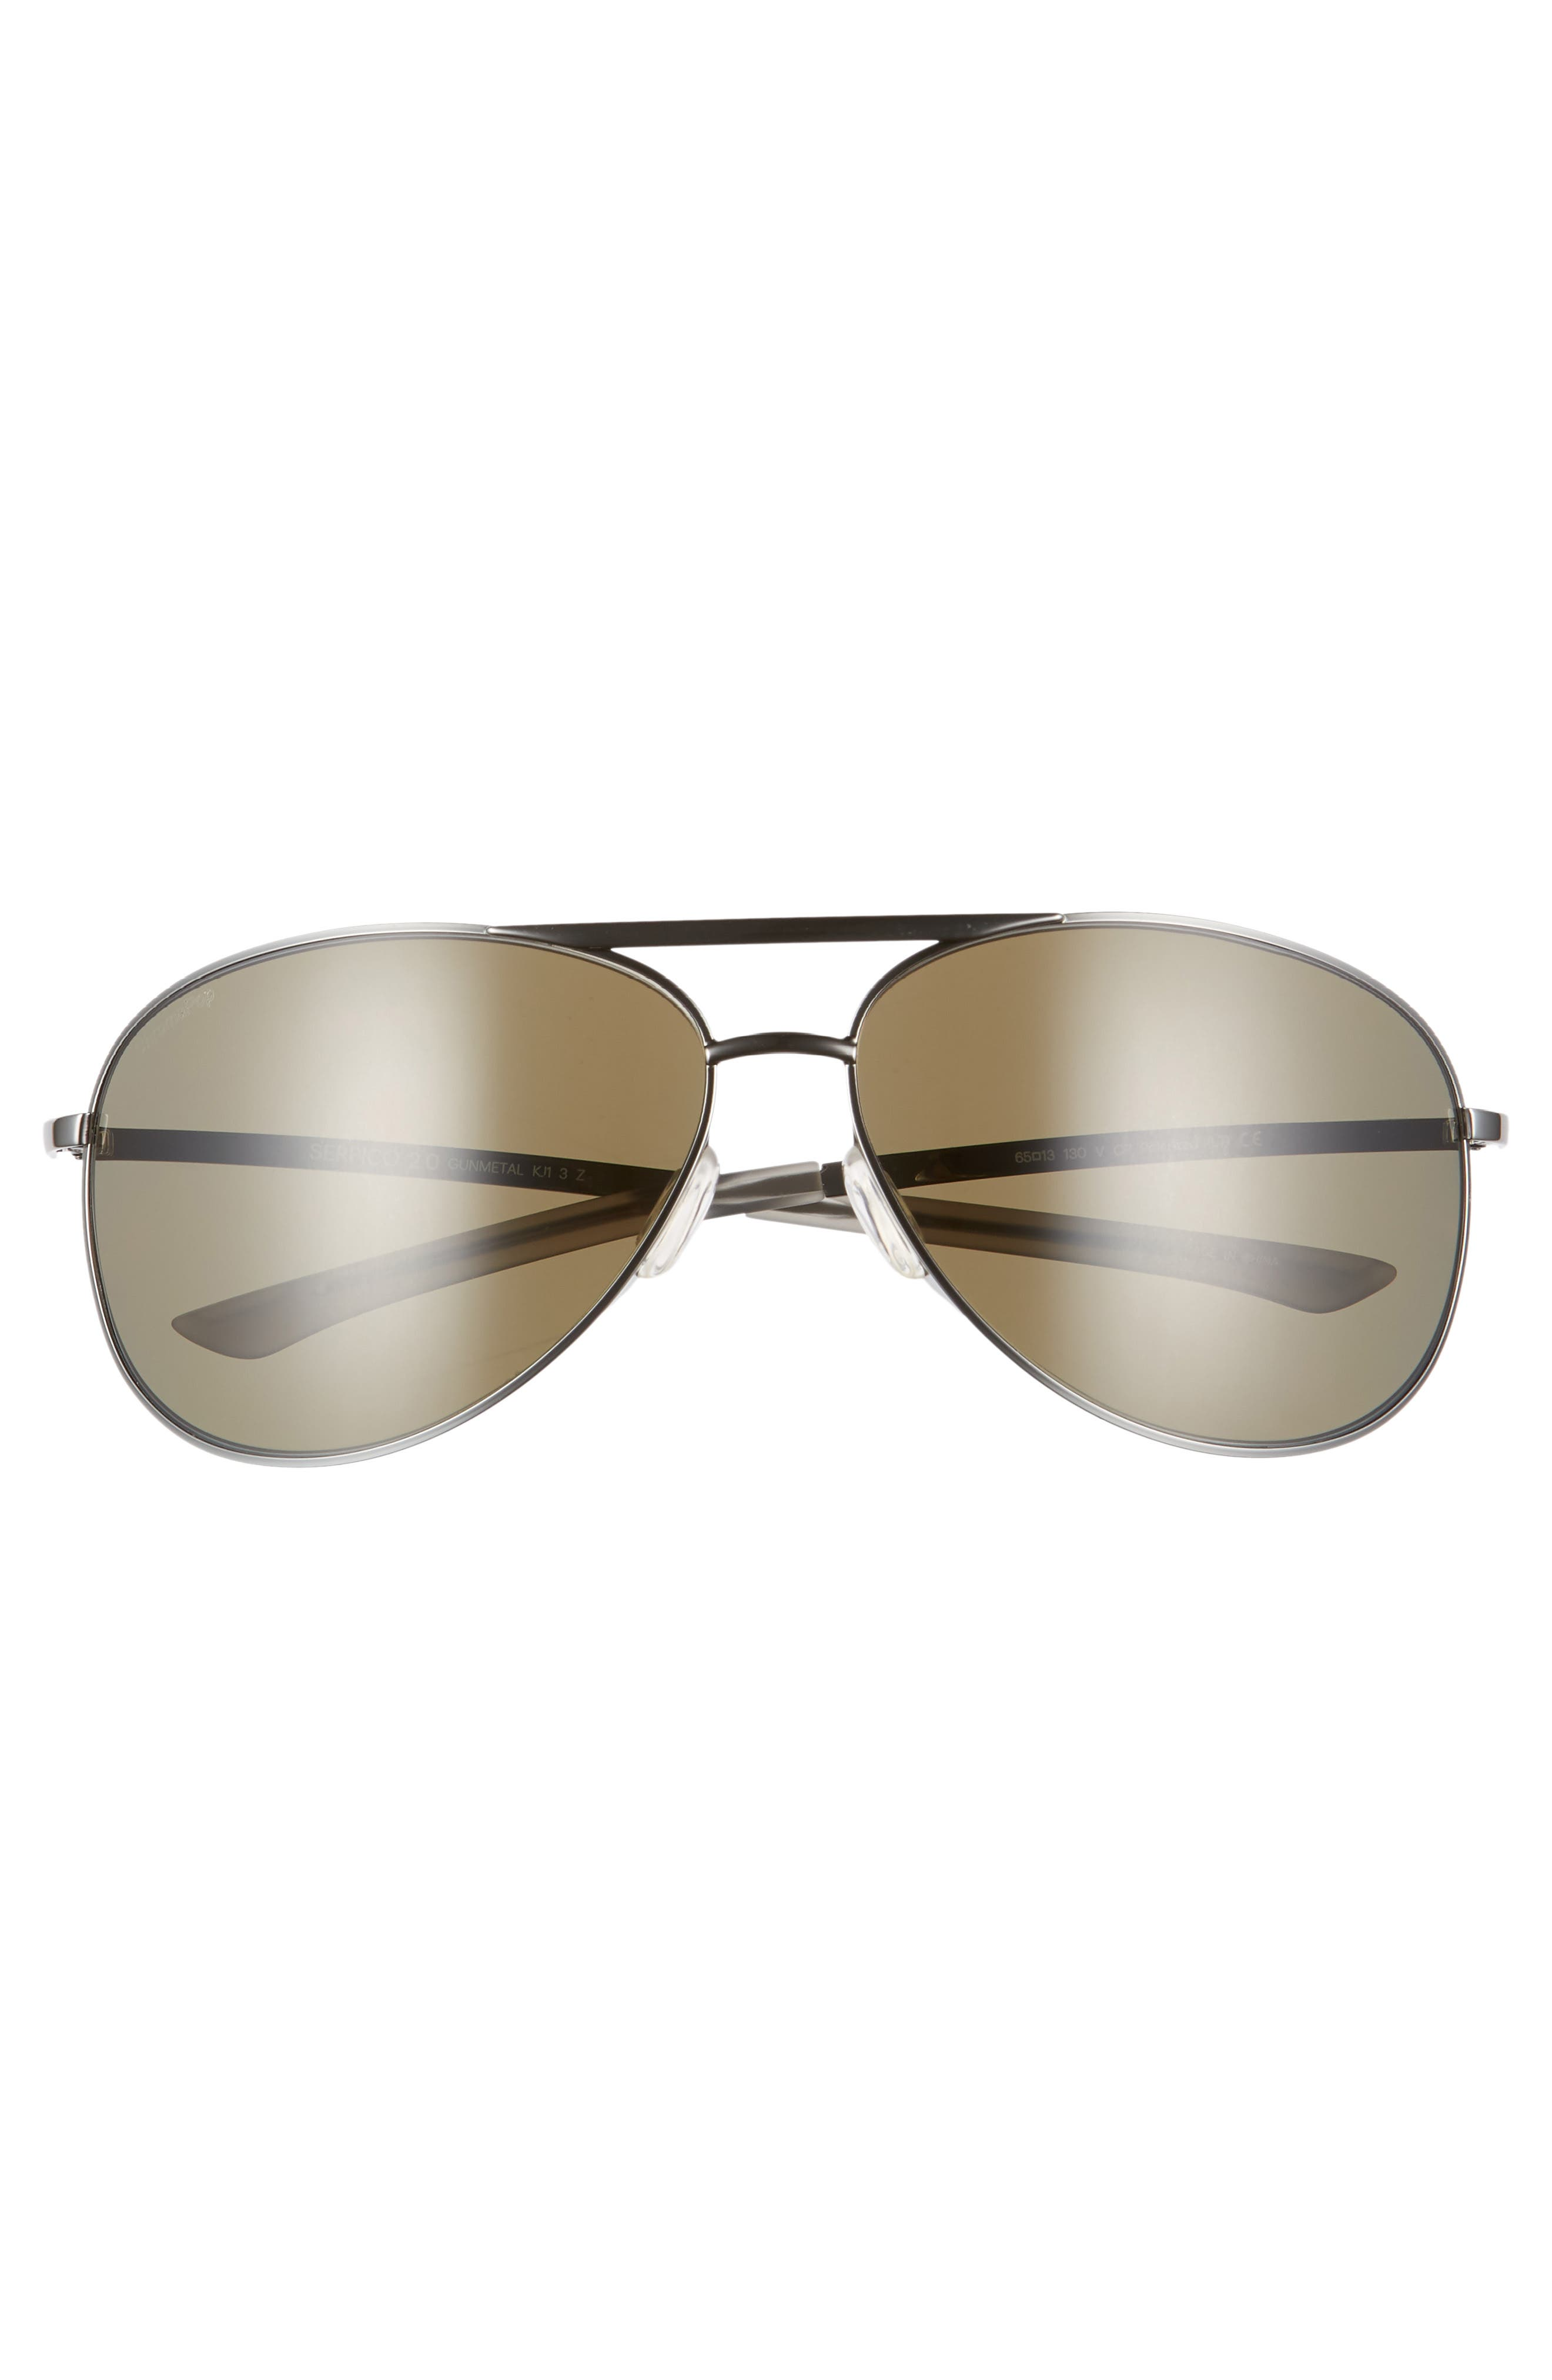 Serpico 2 65mm Mirrored ChromaPop<sup>™</sup> Polarized Aviator Sunglasses,                             Alternate thumbnail 2, color,                             GUNMETAL